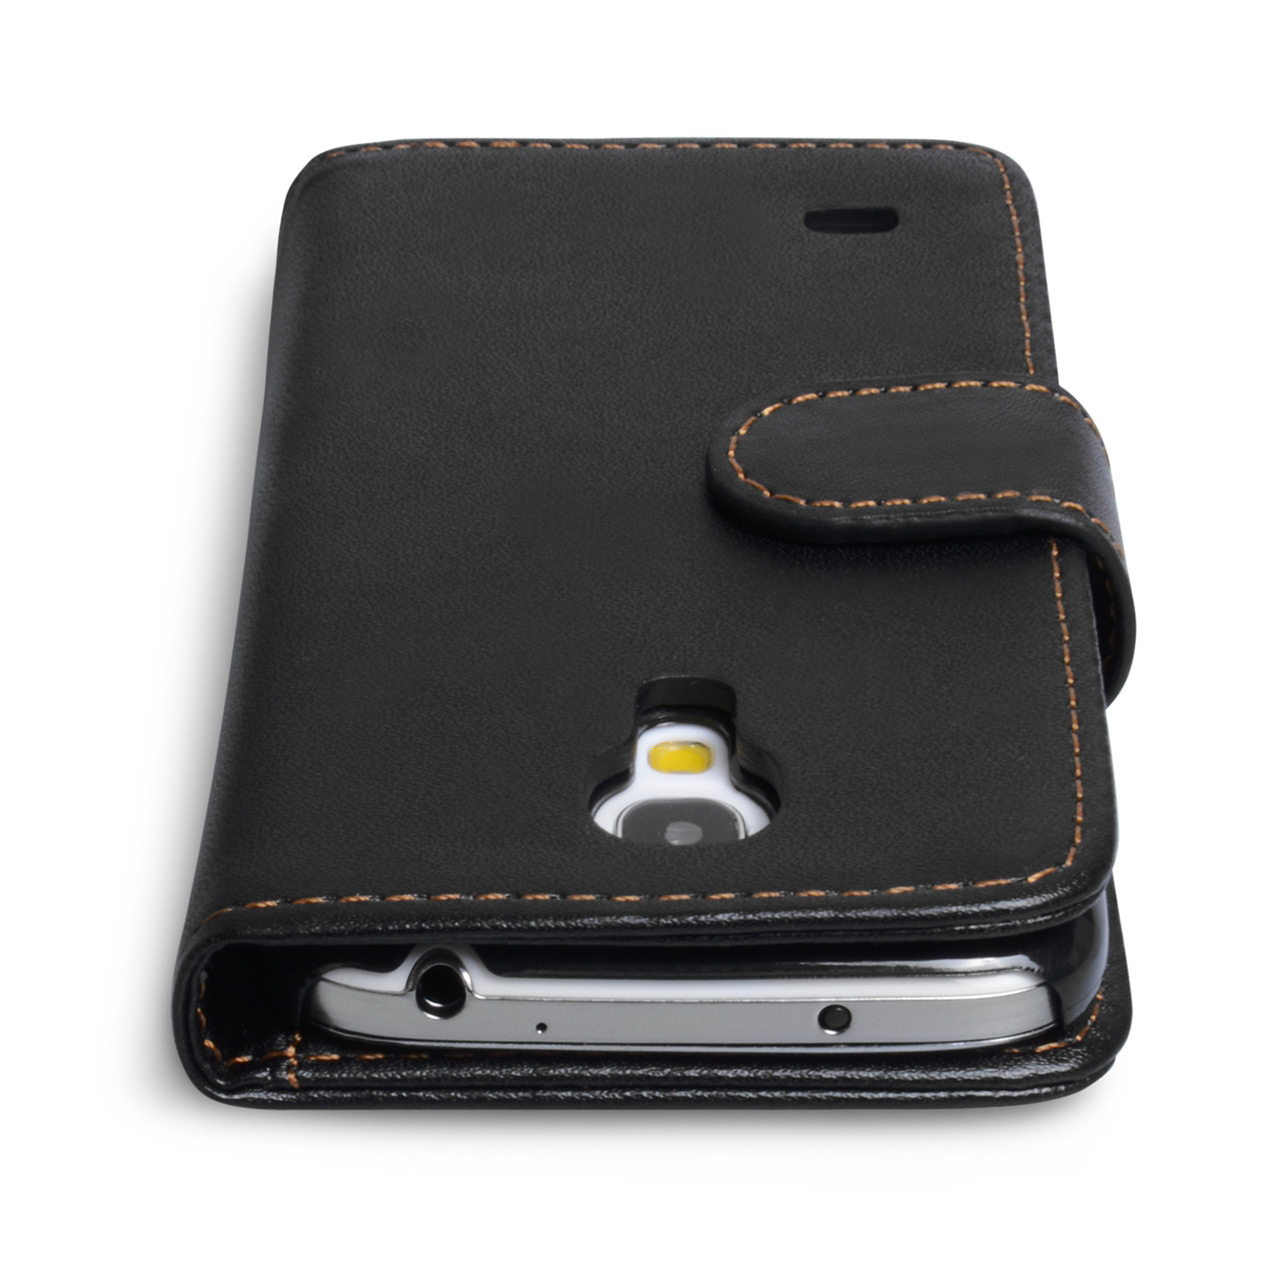 YouSave Samsung Galaxy S4 Mini Leather Effect Wallet Case- Black